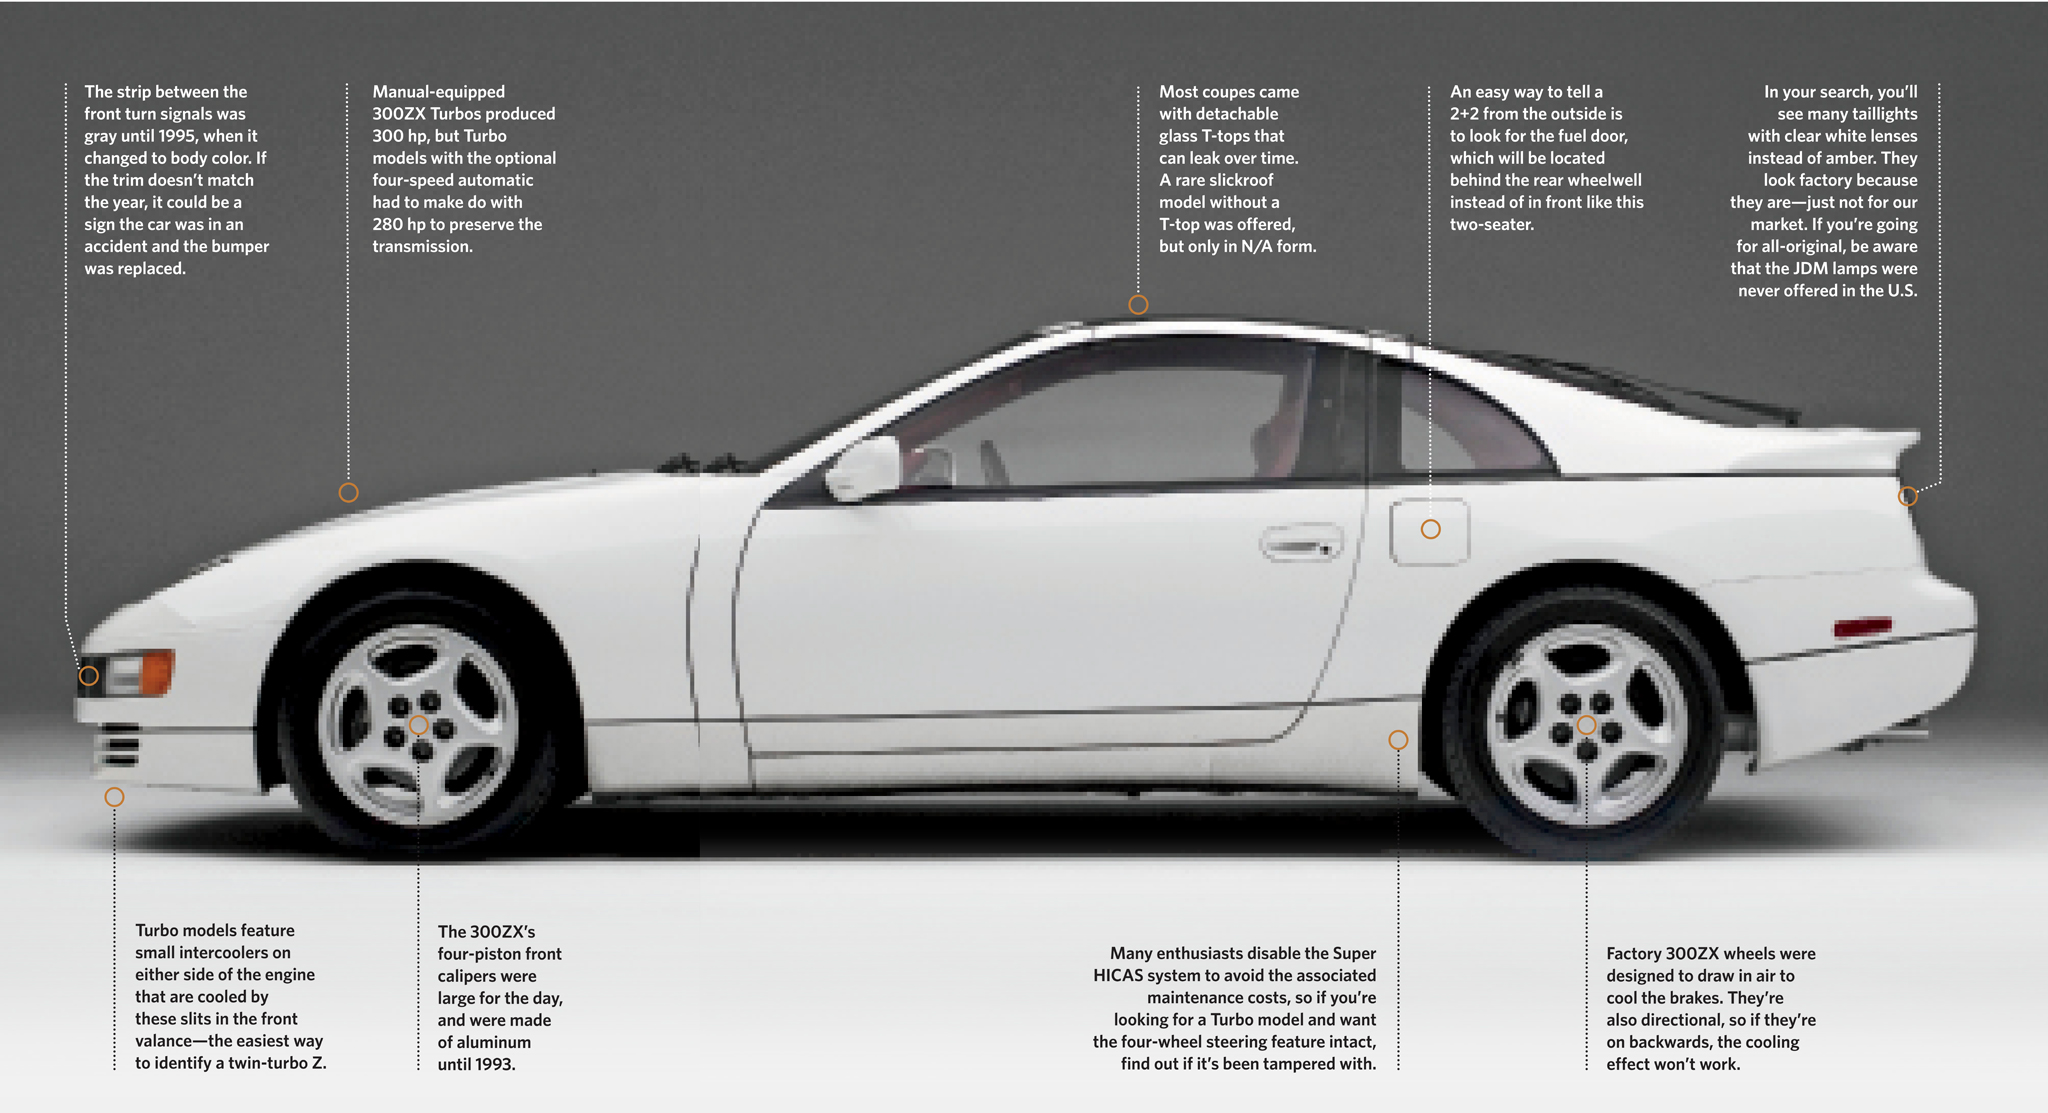 Article 1990 1996 Nissan 300zx Buyers Guide Overstockcom Cars Nv3500 Transmission Wiring Harness Through The Years